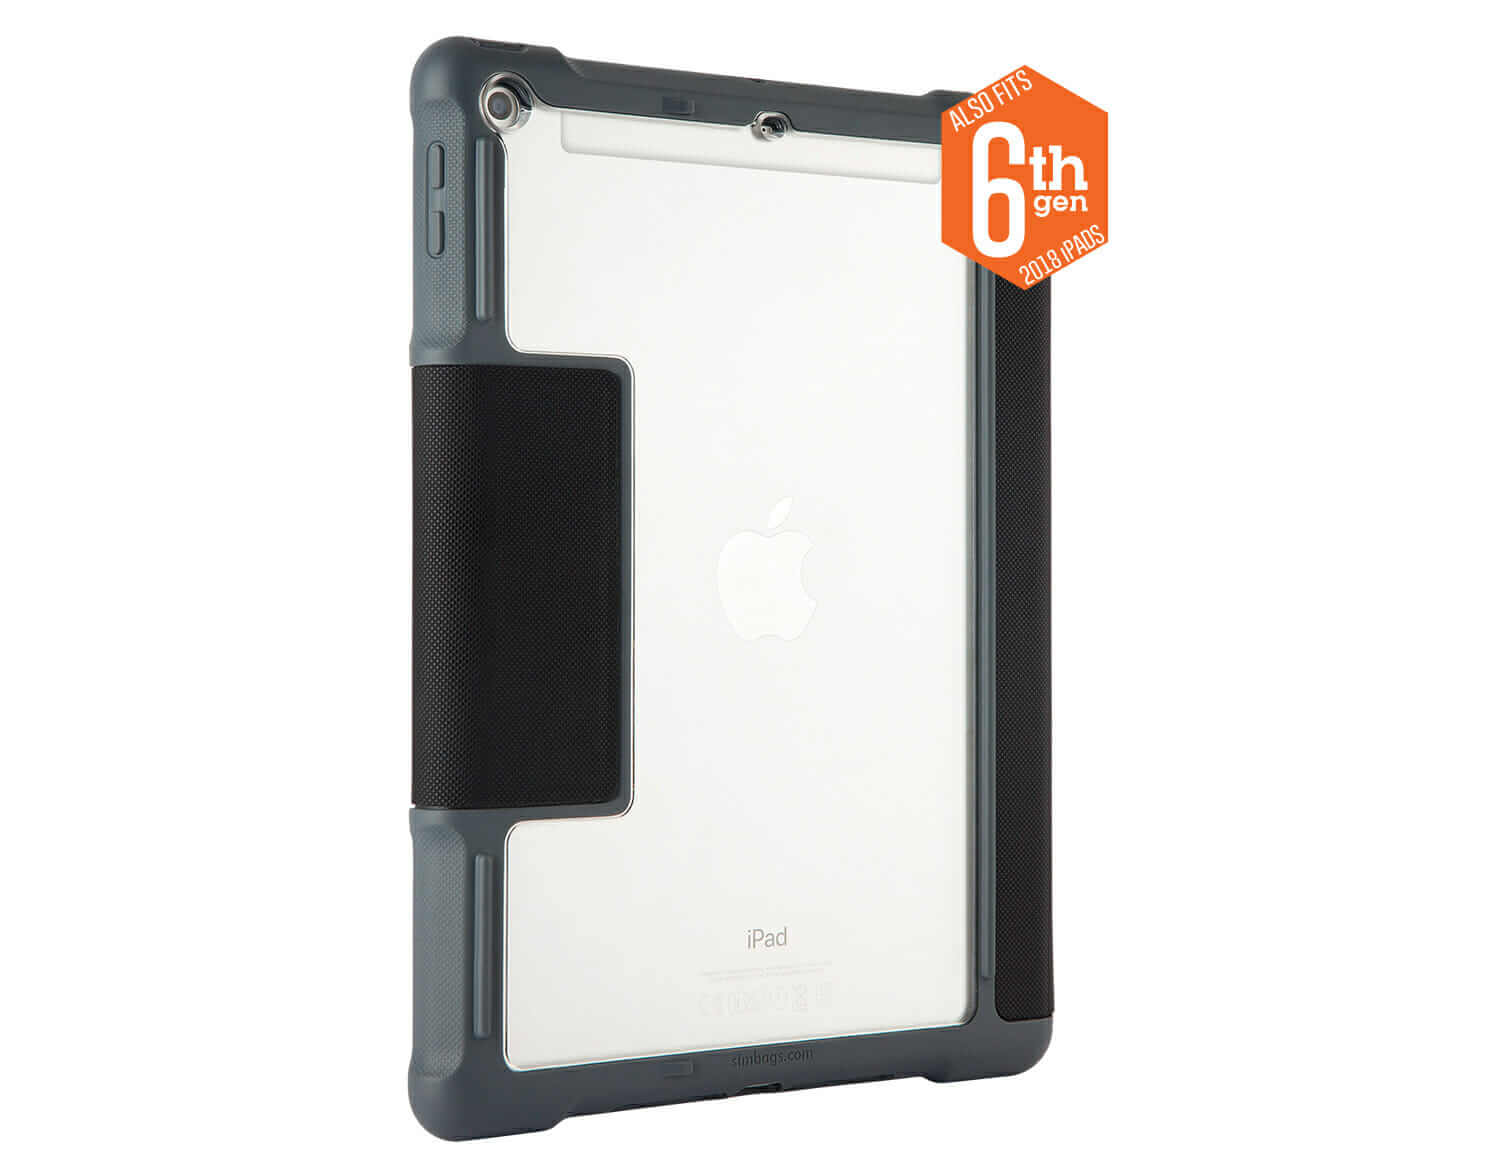 detailing fd8fd 4fe99 iPad 6th Gen Case With Apple Pencil or Logitech Crayon Storage (Commercial)